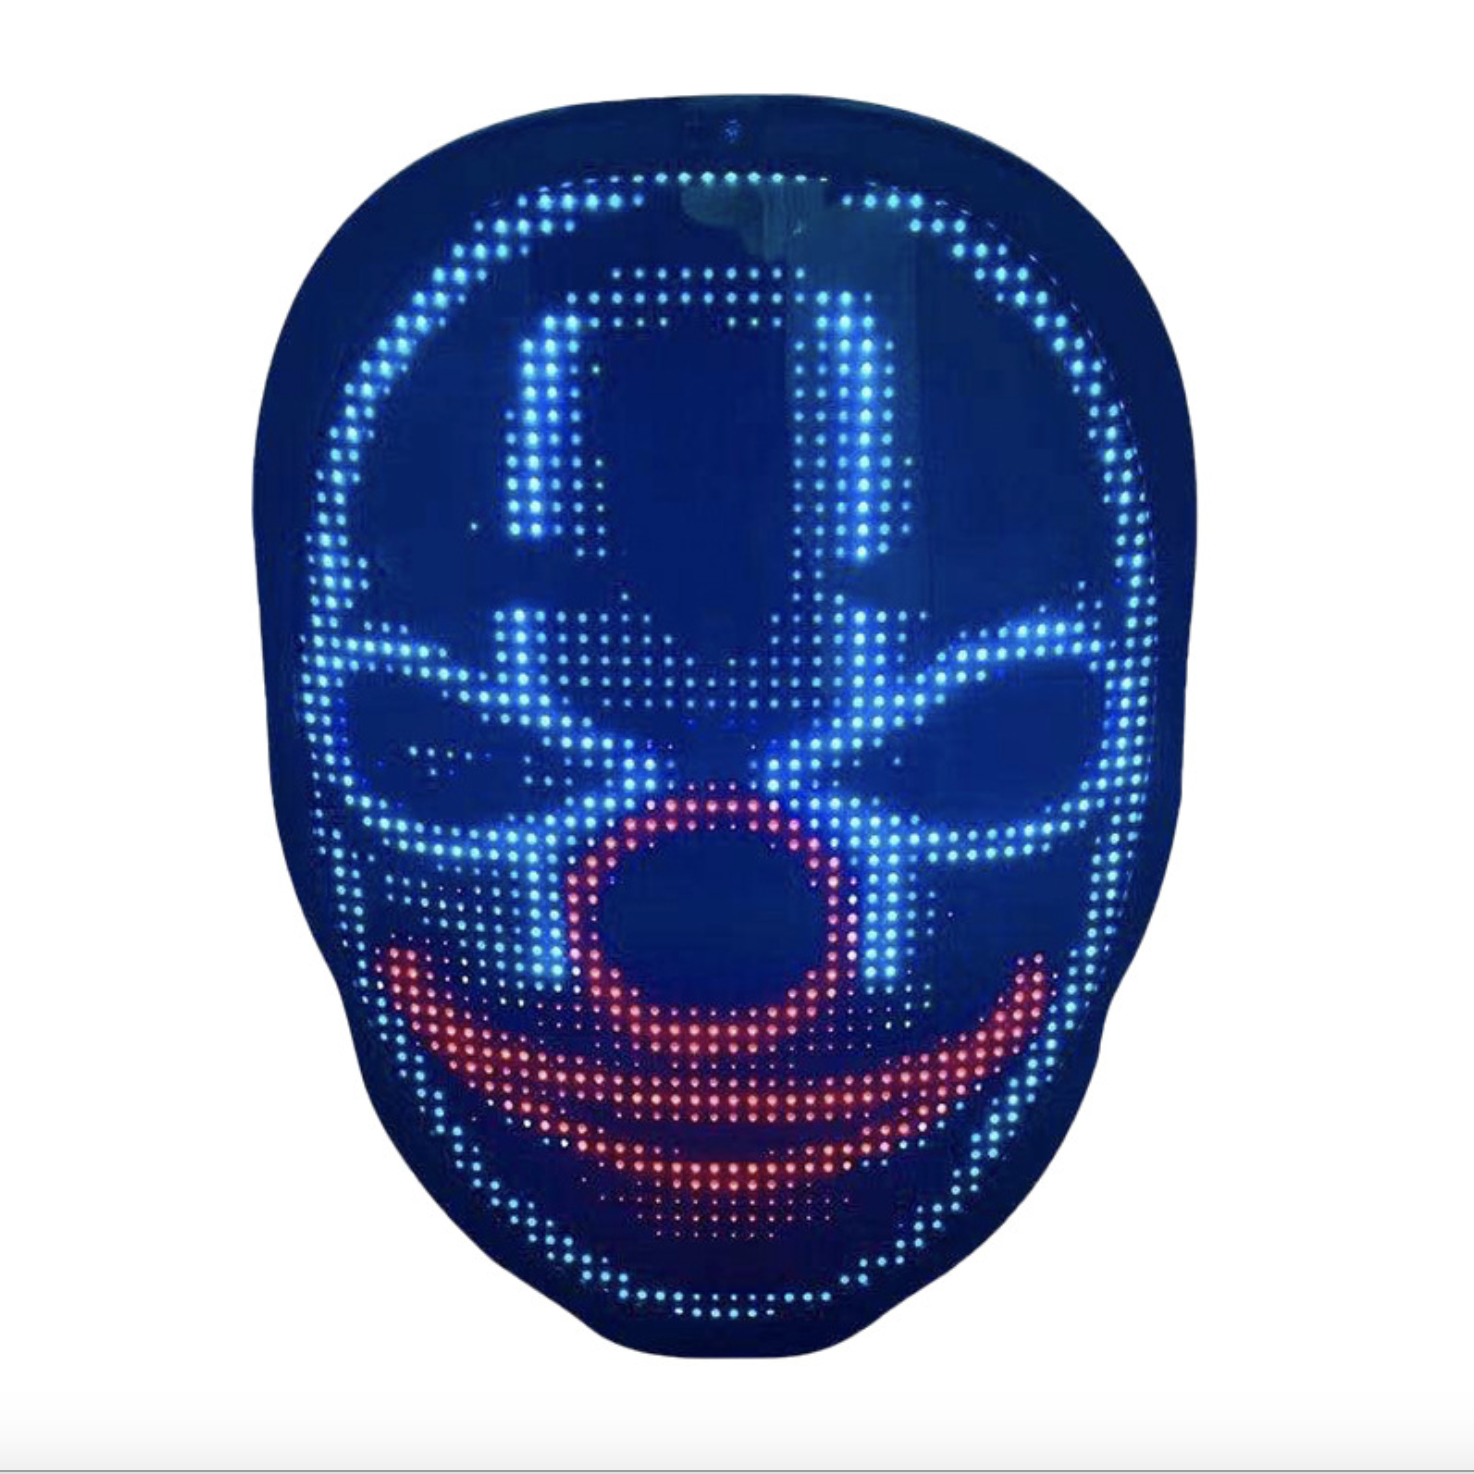 2020 Factory Direct Supply Led Display <span class=keywords><strong>Masker</strong></span> Halloween Lichtgevende <span class=keywords><strong>Masker</strong></span> Bluetooth Editing Full Color Kleur Veranderende Party Party